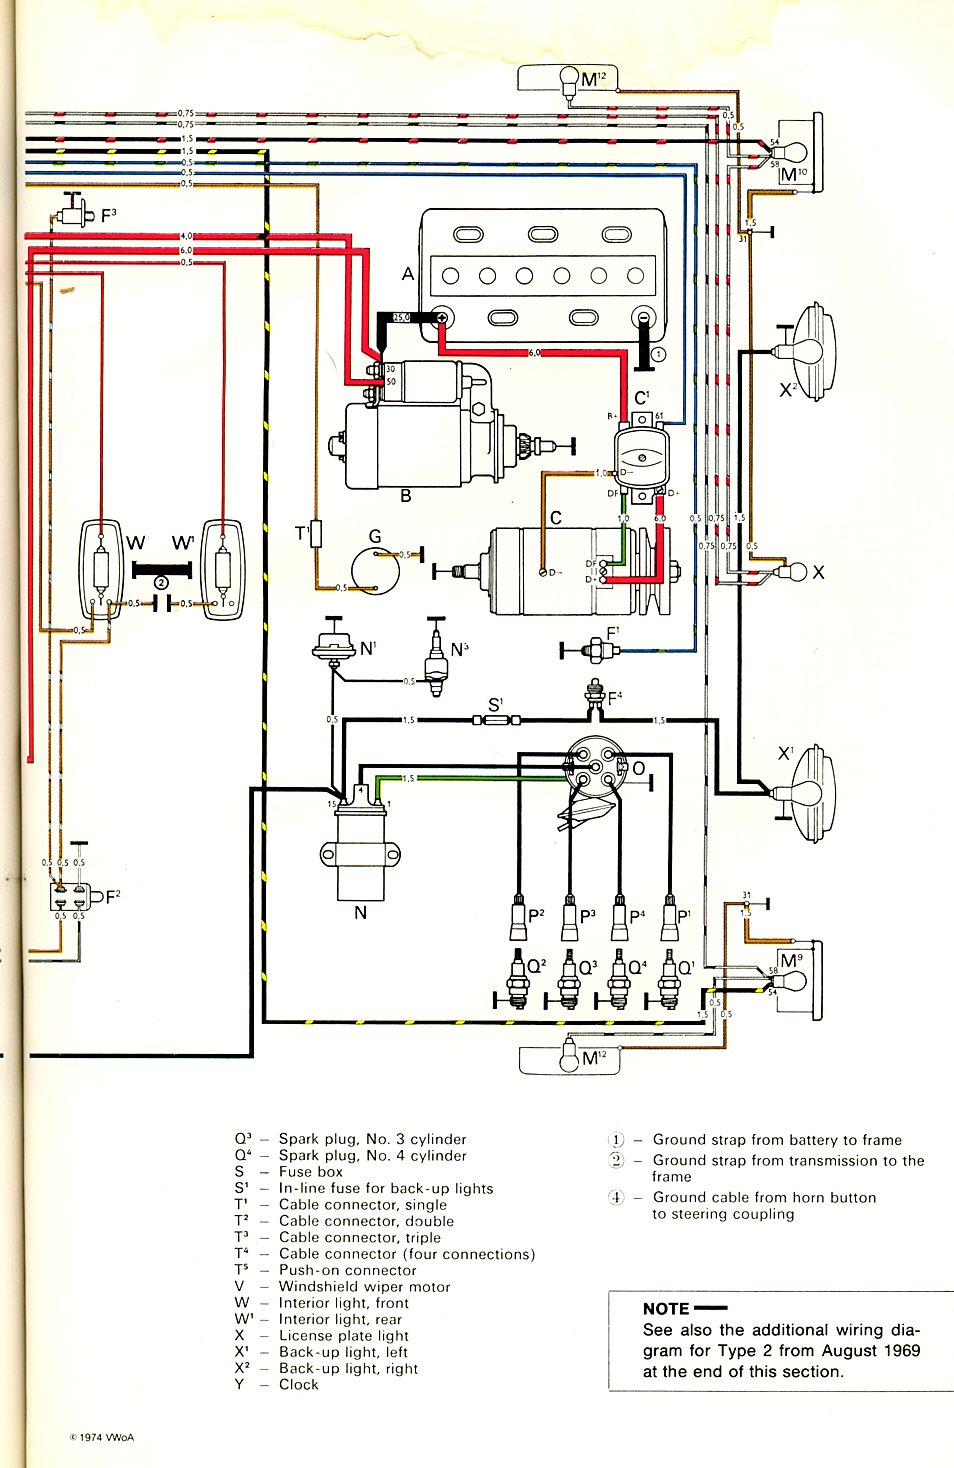 Volkswagen Wiring Diagram: TheSamba.com :: Type 2 Wiring Diagrams,Design